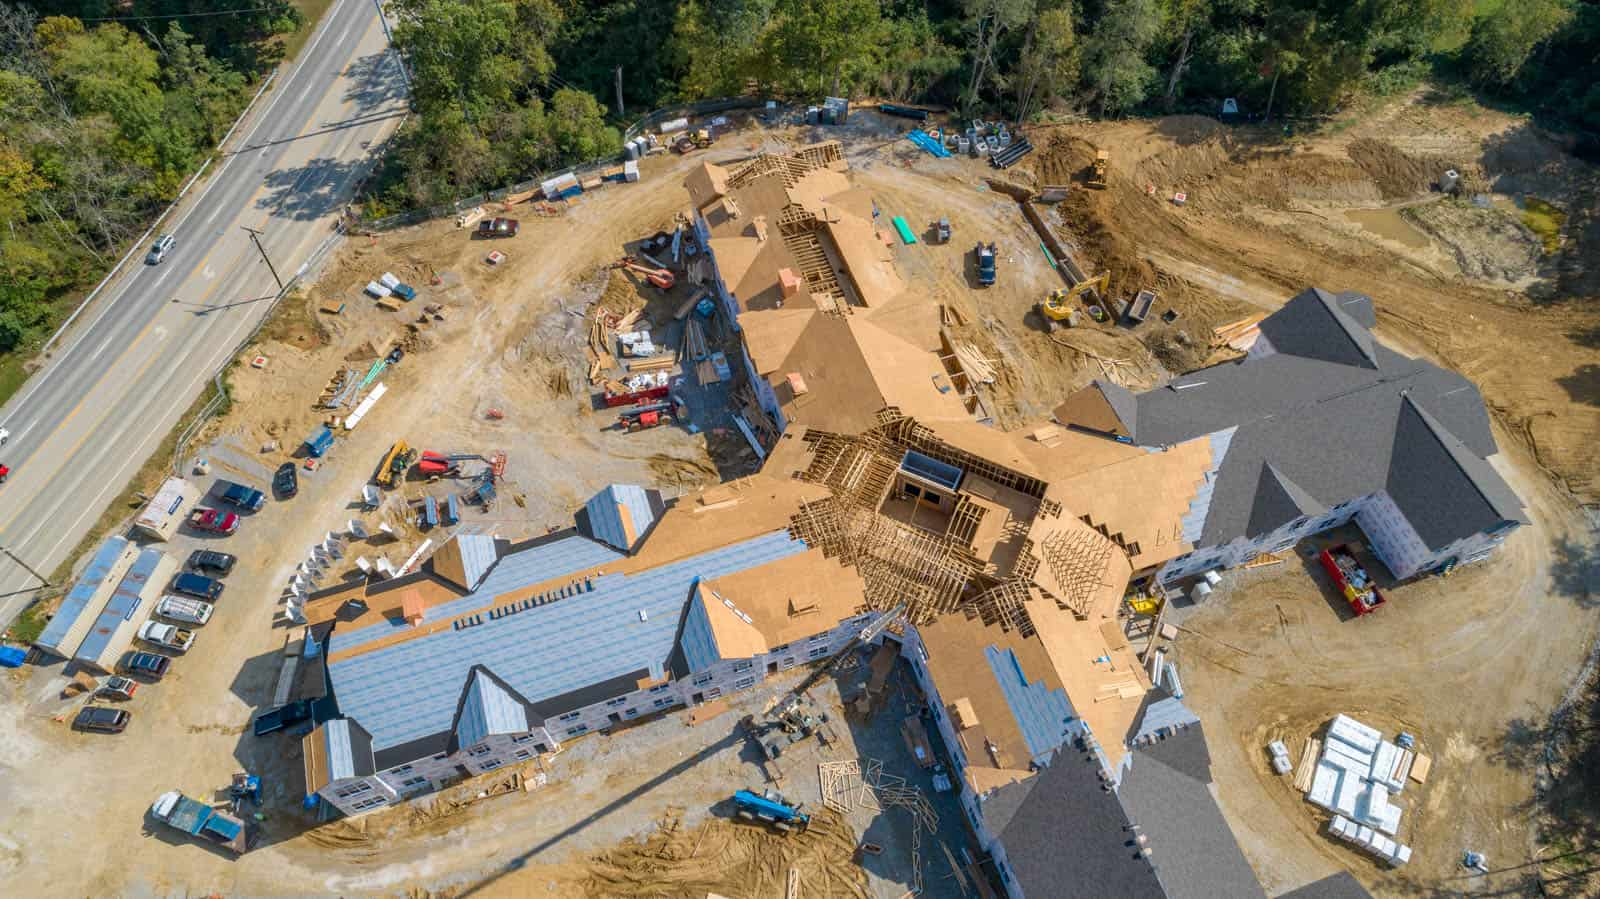 aerial drone photo looking down on rooftop construction project of building in Anderson Township, Cincinnati, Ohio